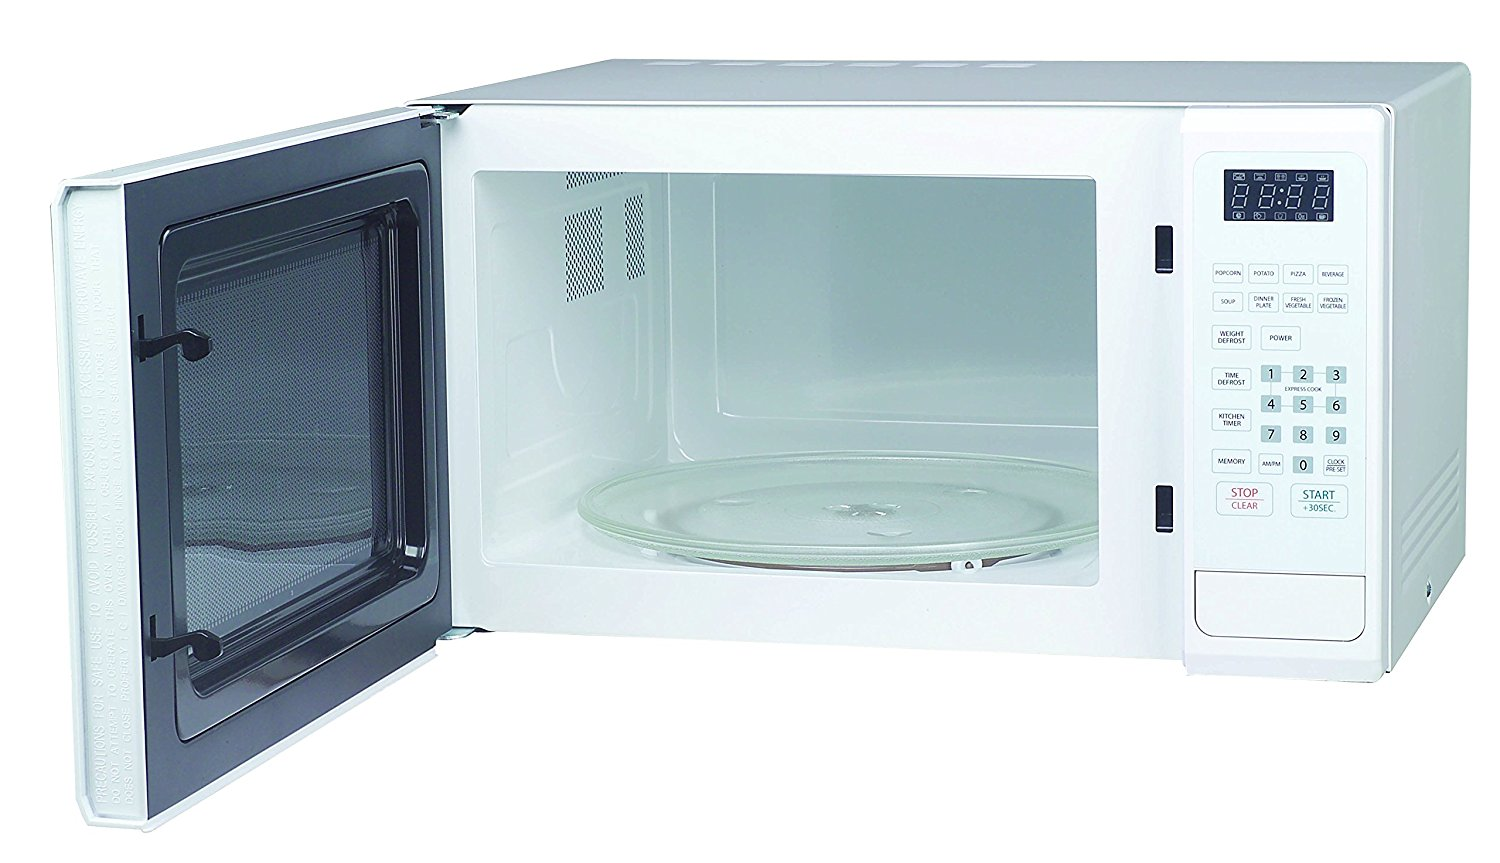 Magic Chef Microwave Troubleshooting Bestmicrowave